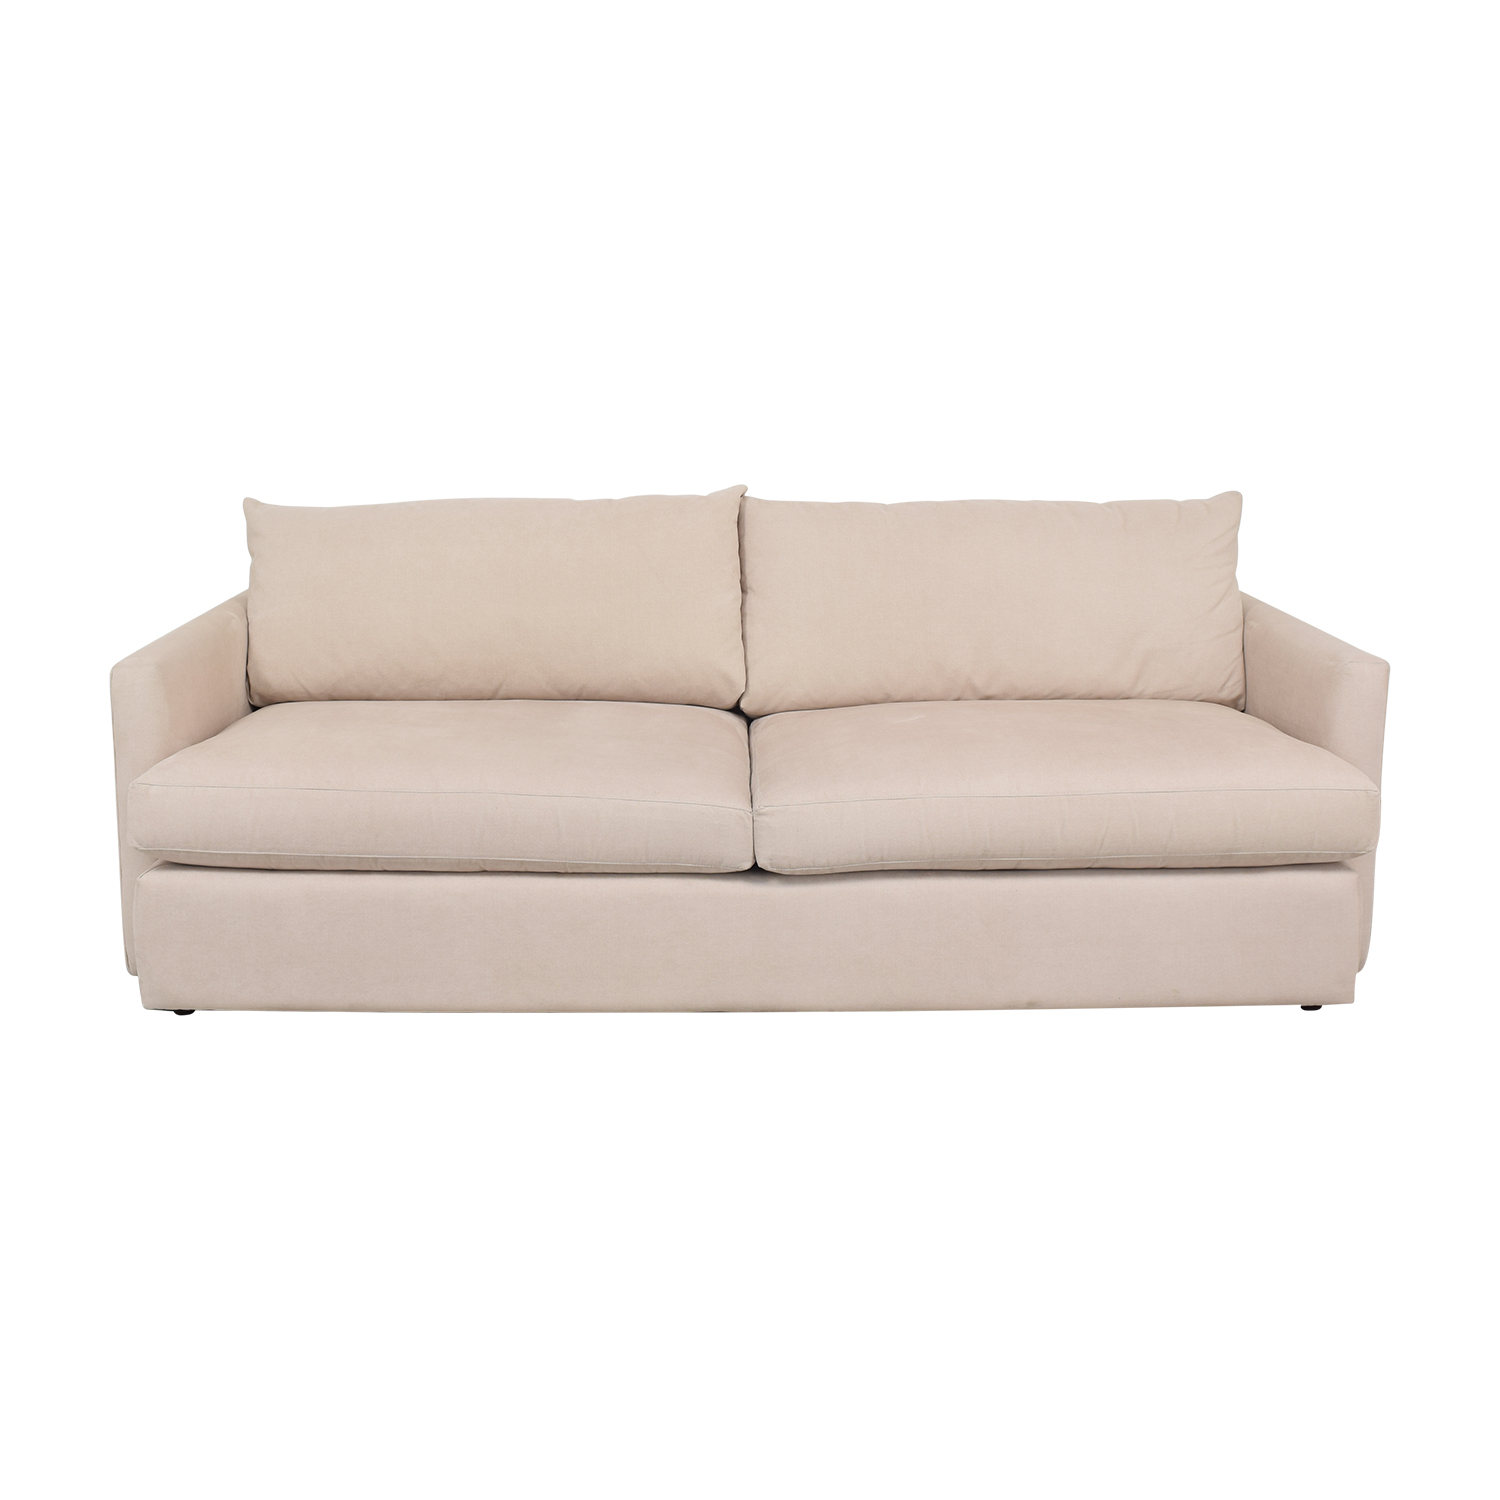 Crate & Barrel Crate & Barrel Lounge Sofa nj